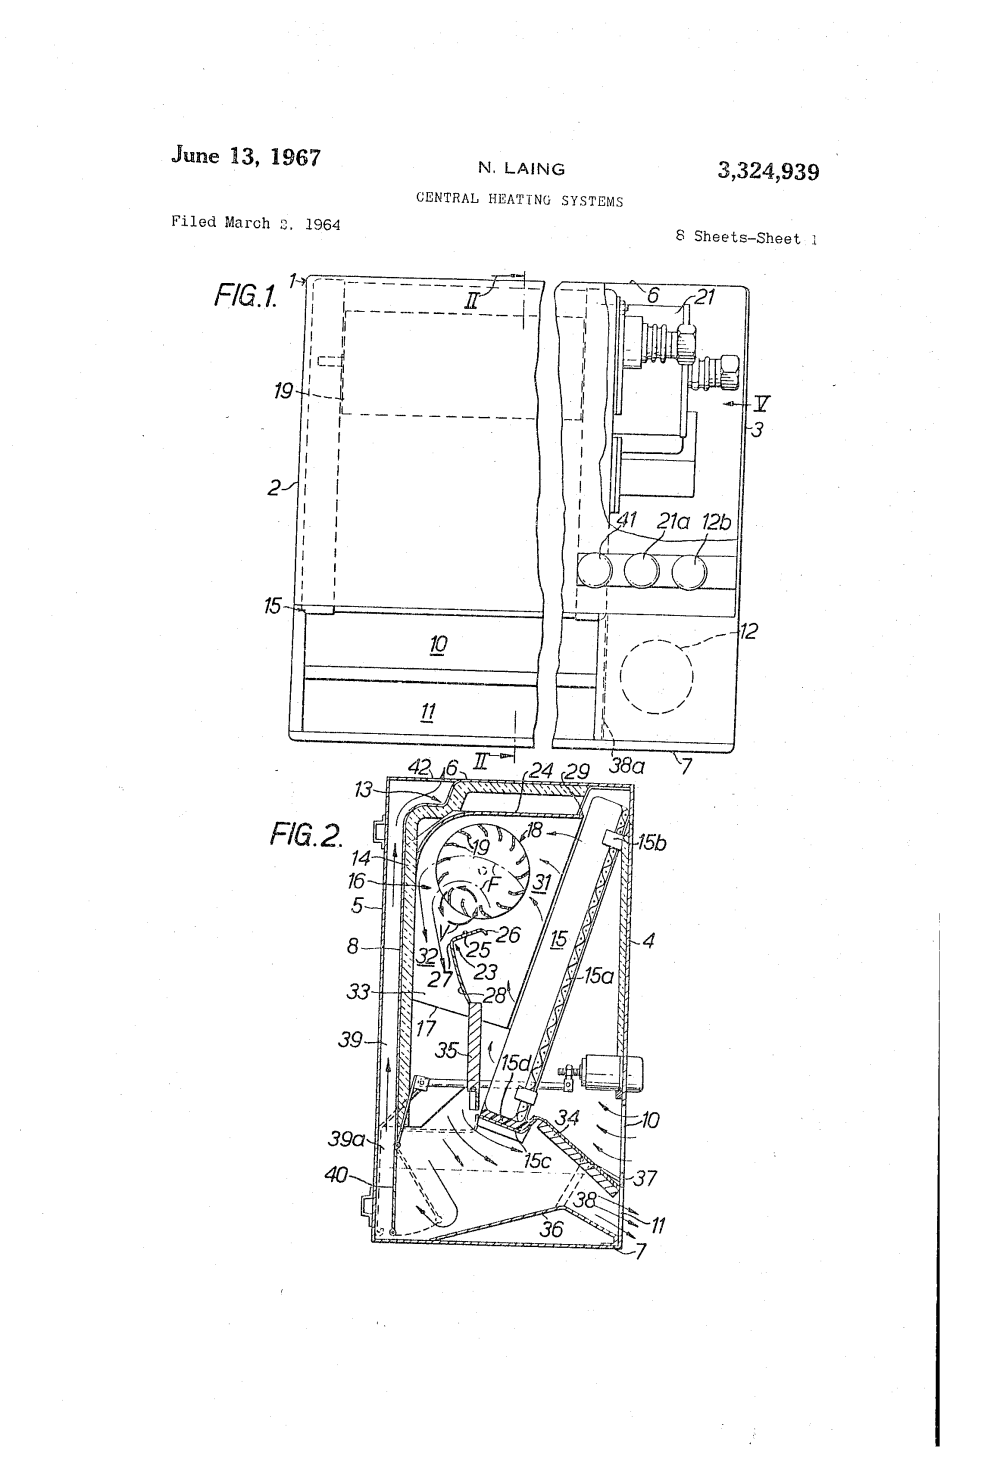 medium resolution of patent us3324939 central heating systems google patents liquid heating google patents on 110 volt baseboard heater wiring